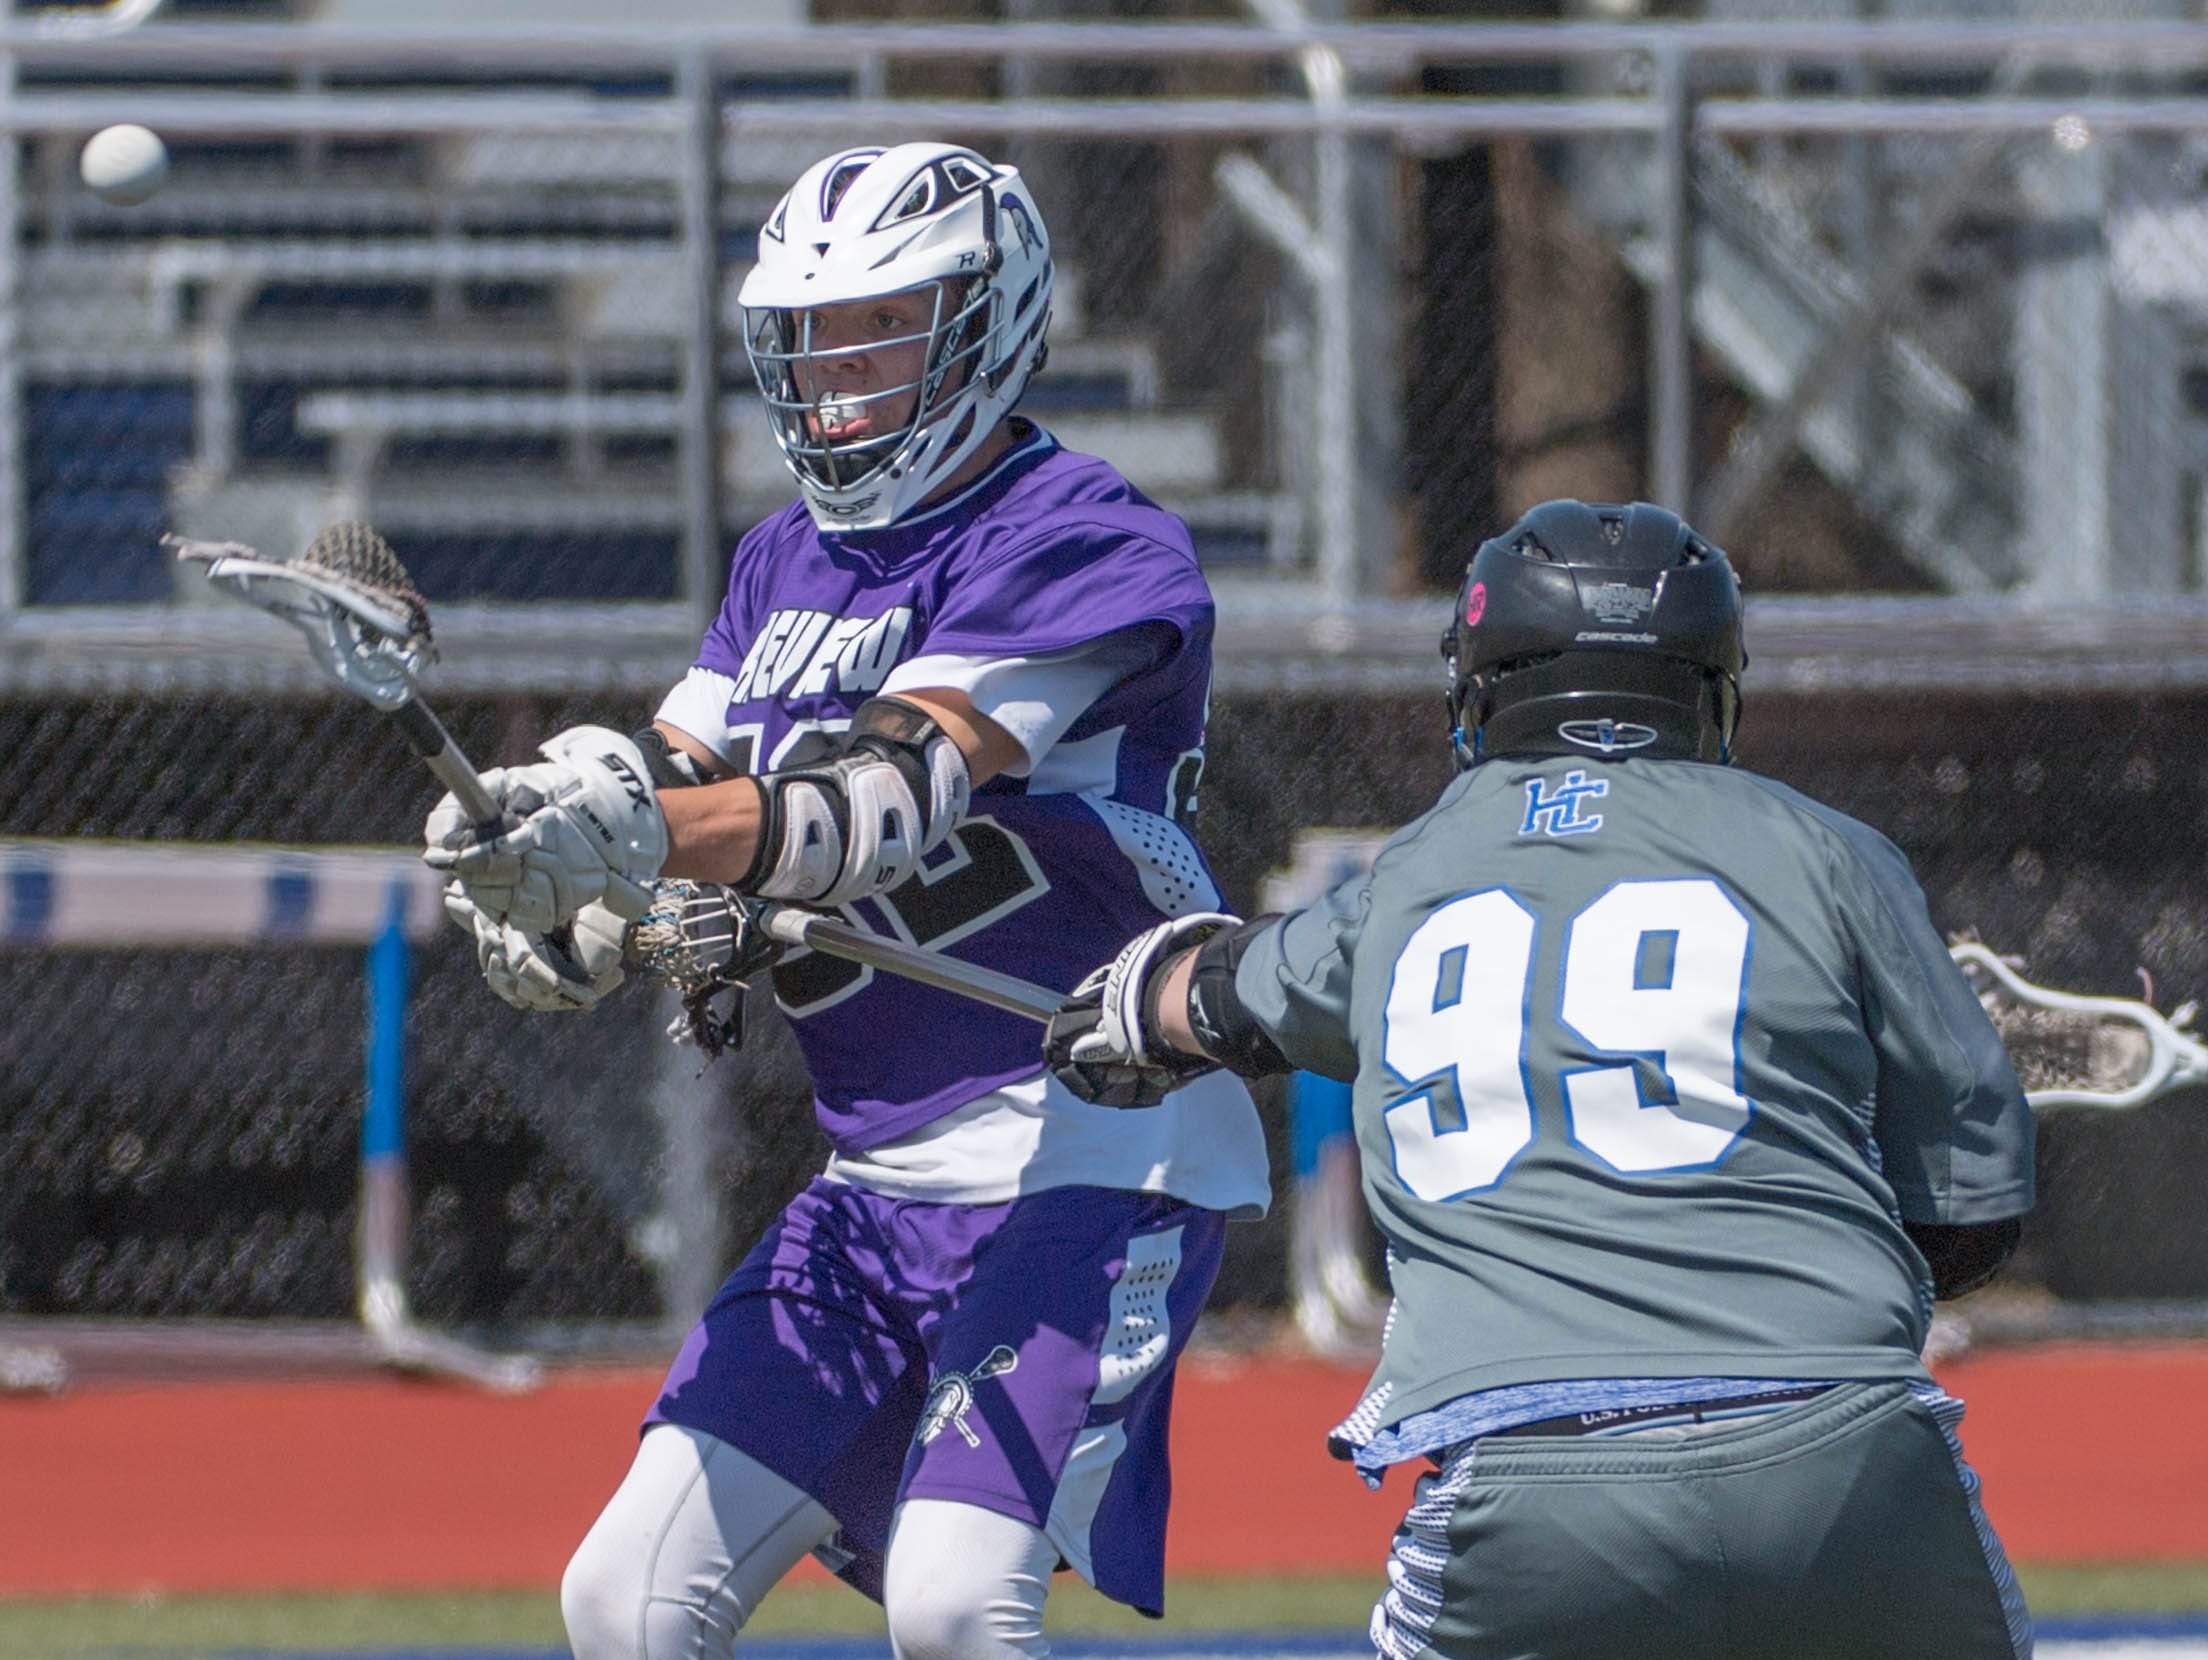 Lakeview's Jerry Haadsma (52) advances the ball against Harper Creek in the All City Lacrosse Tournament on Saturday.